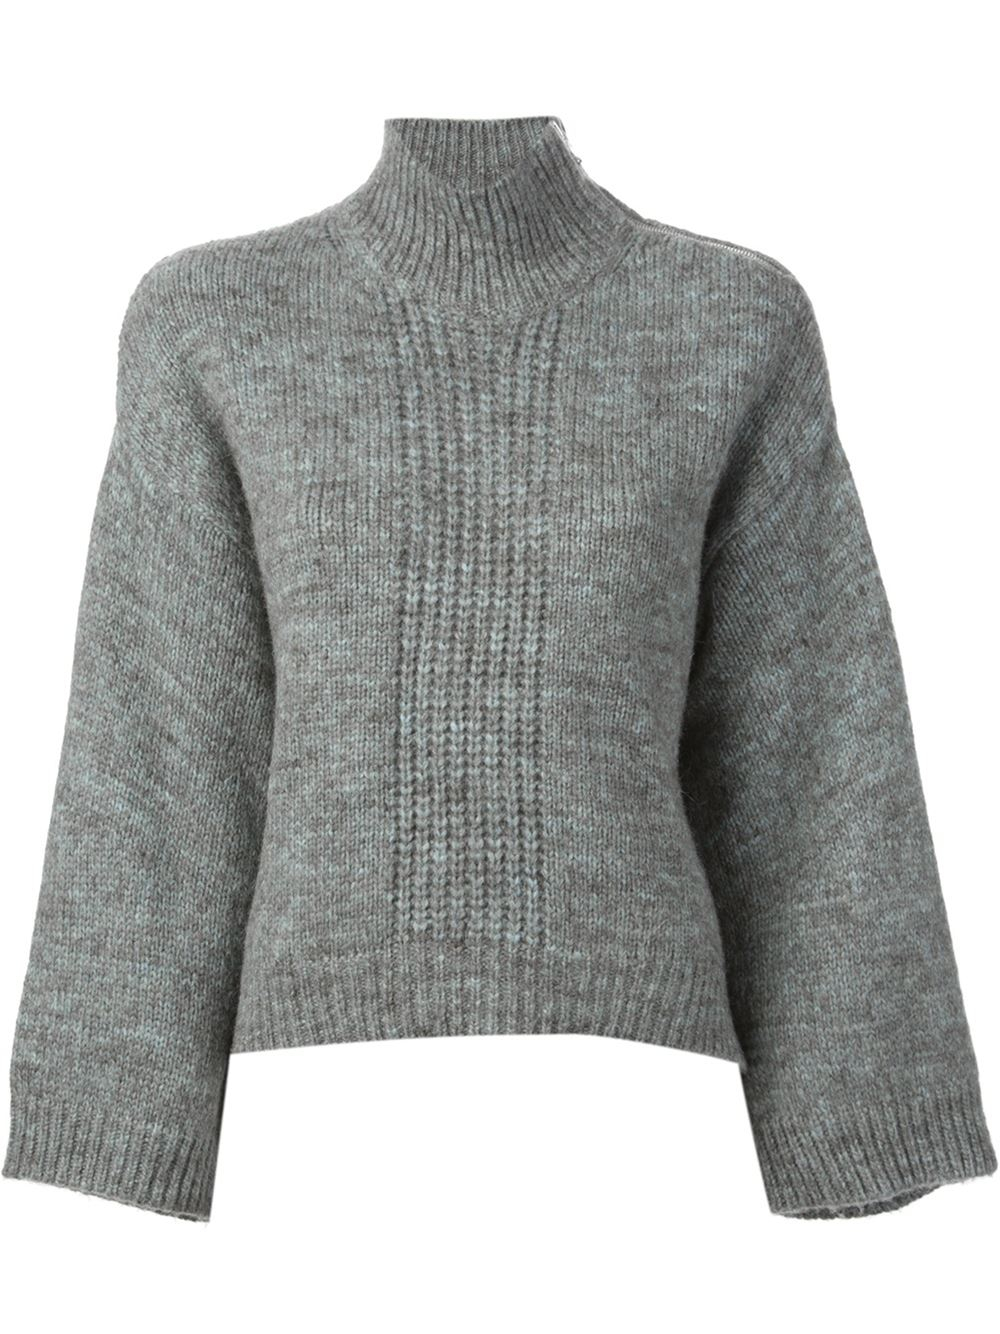 3.1 phillip lim Cropped Boxy Sweater in Gray | Lyst